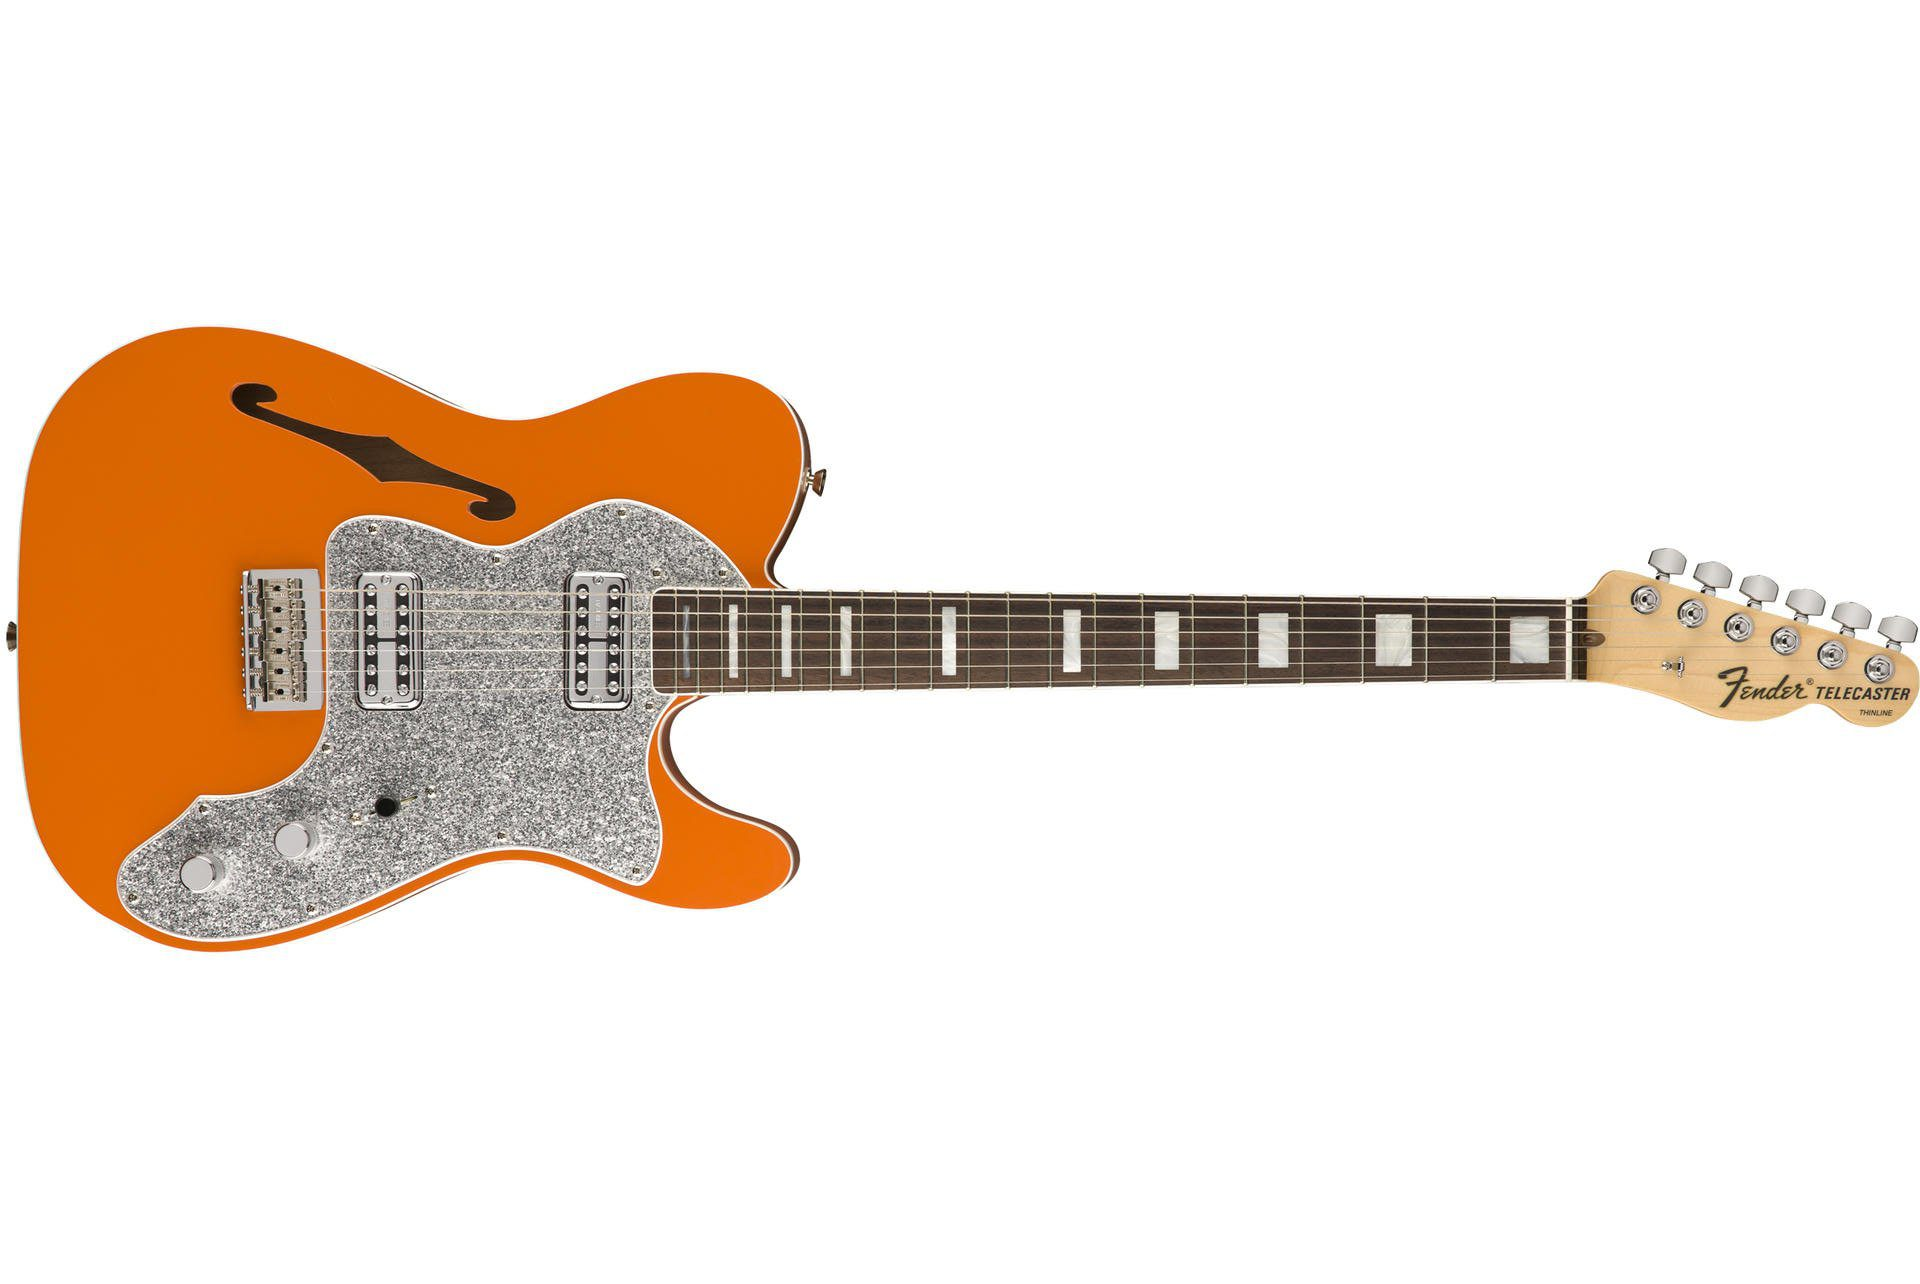 Fender Limited Edition Tele Thinline Super Deluxe